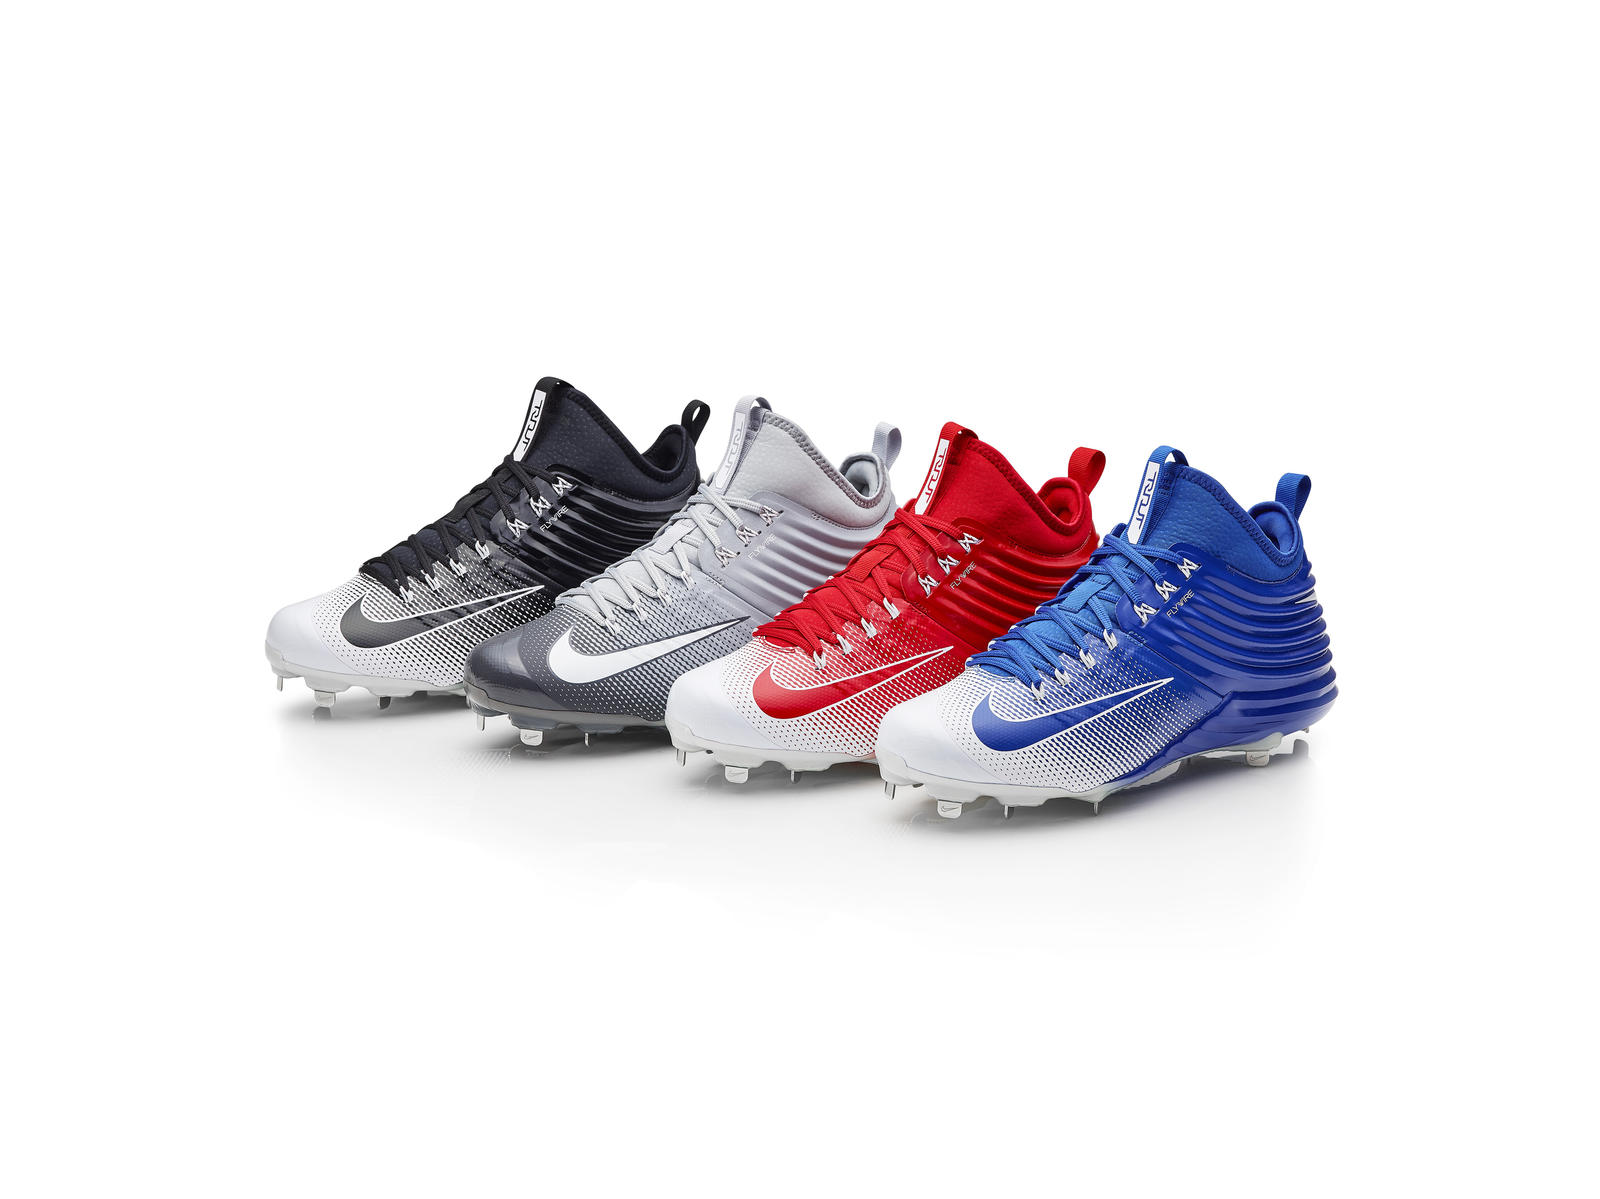 Nike Lunar Trout 2 Embodies Power and